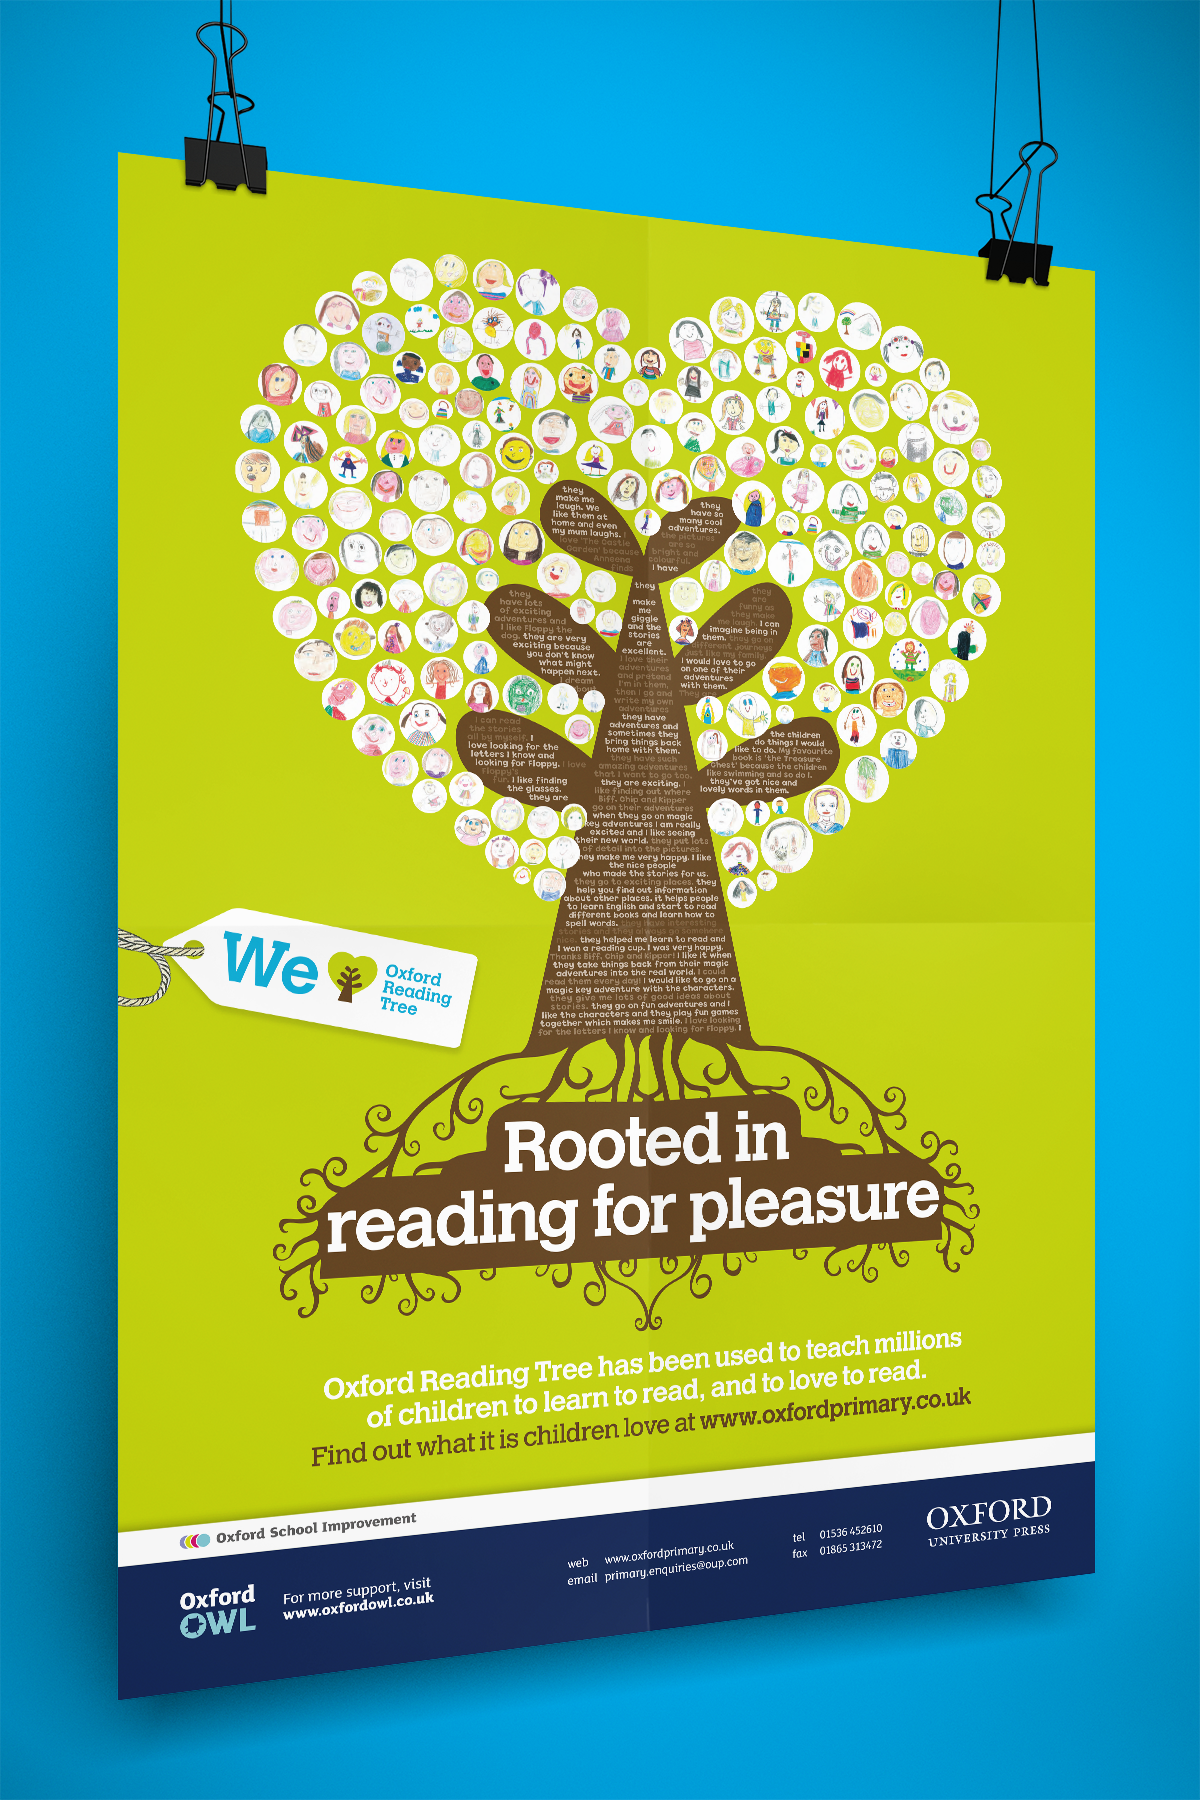 Poster and campaign design for Oxford Reading Tree